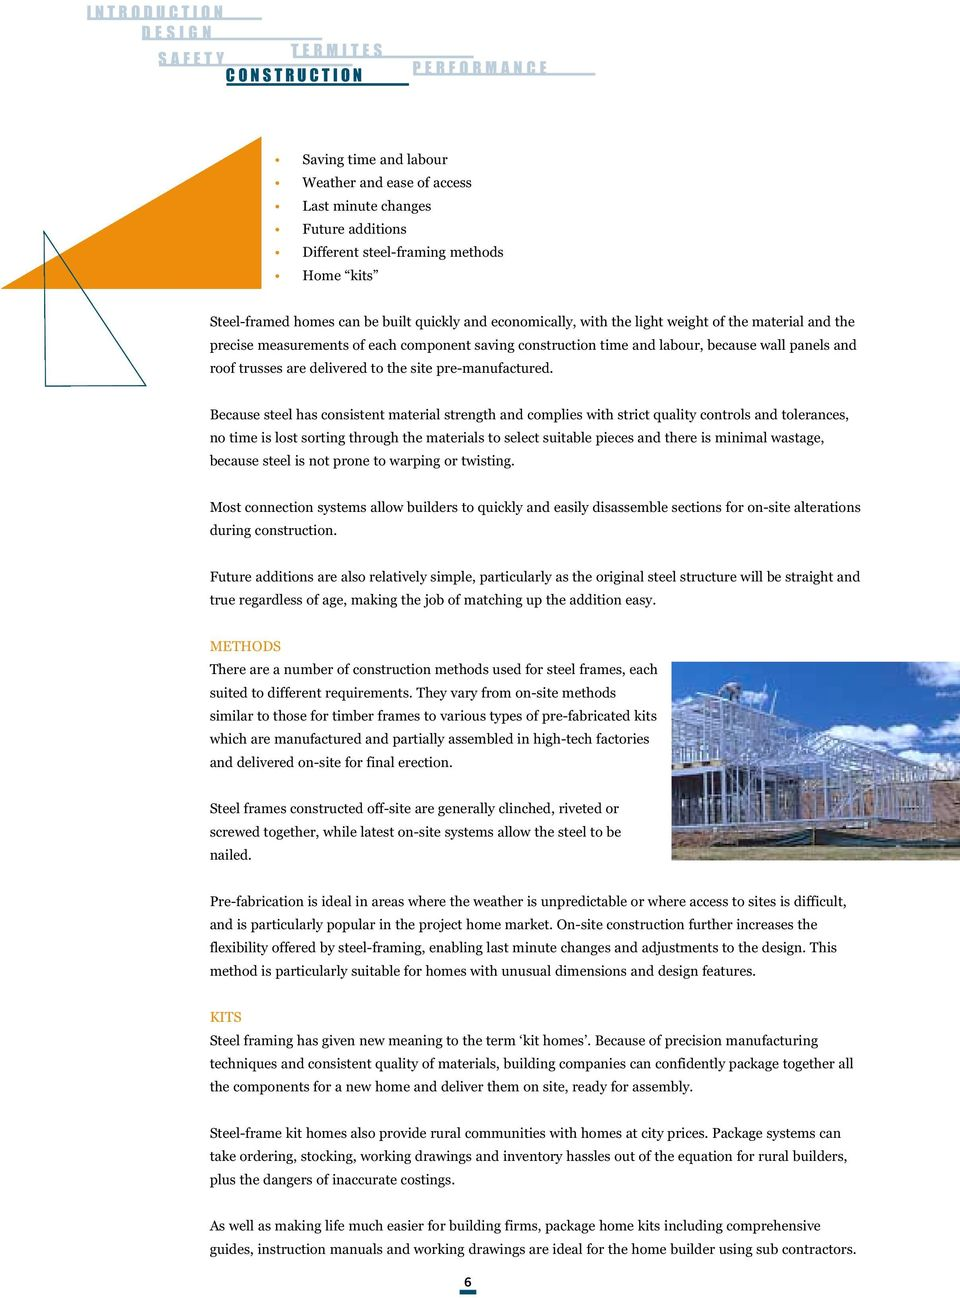 guide to steel framed construction - PDF